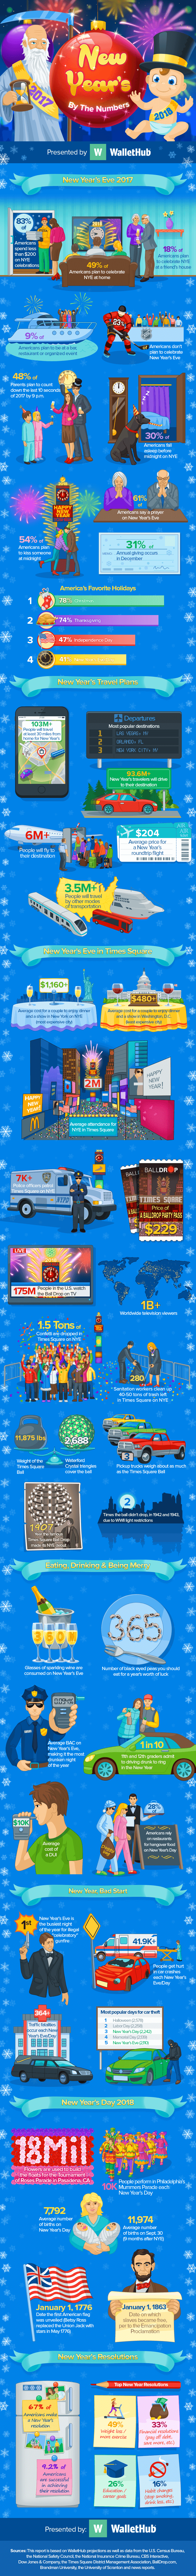 2017-new-years-eve-by-the-numbers-v5